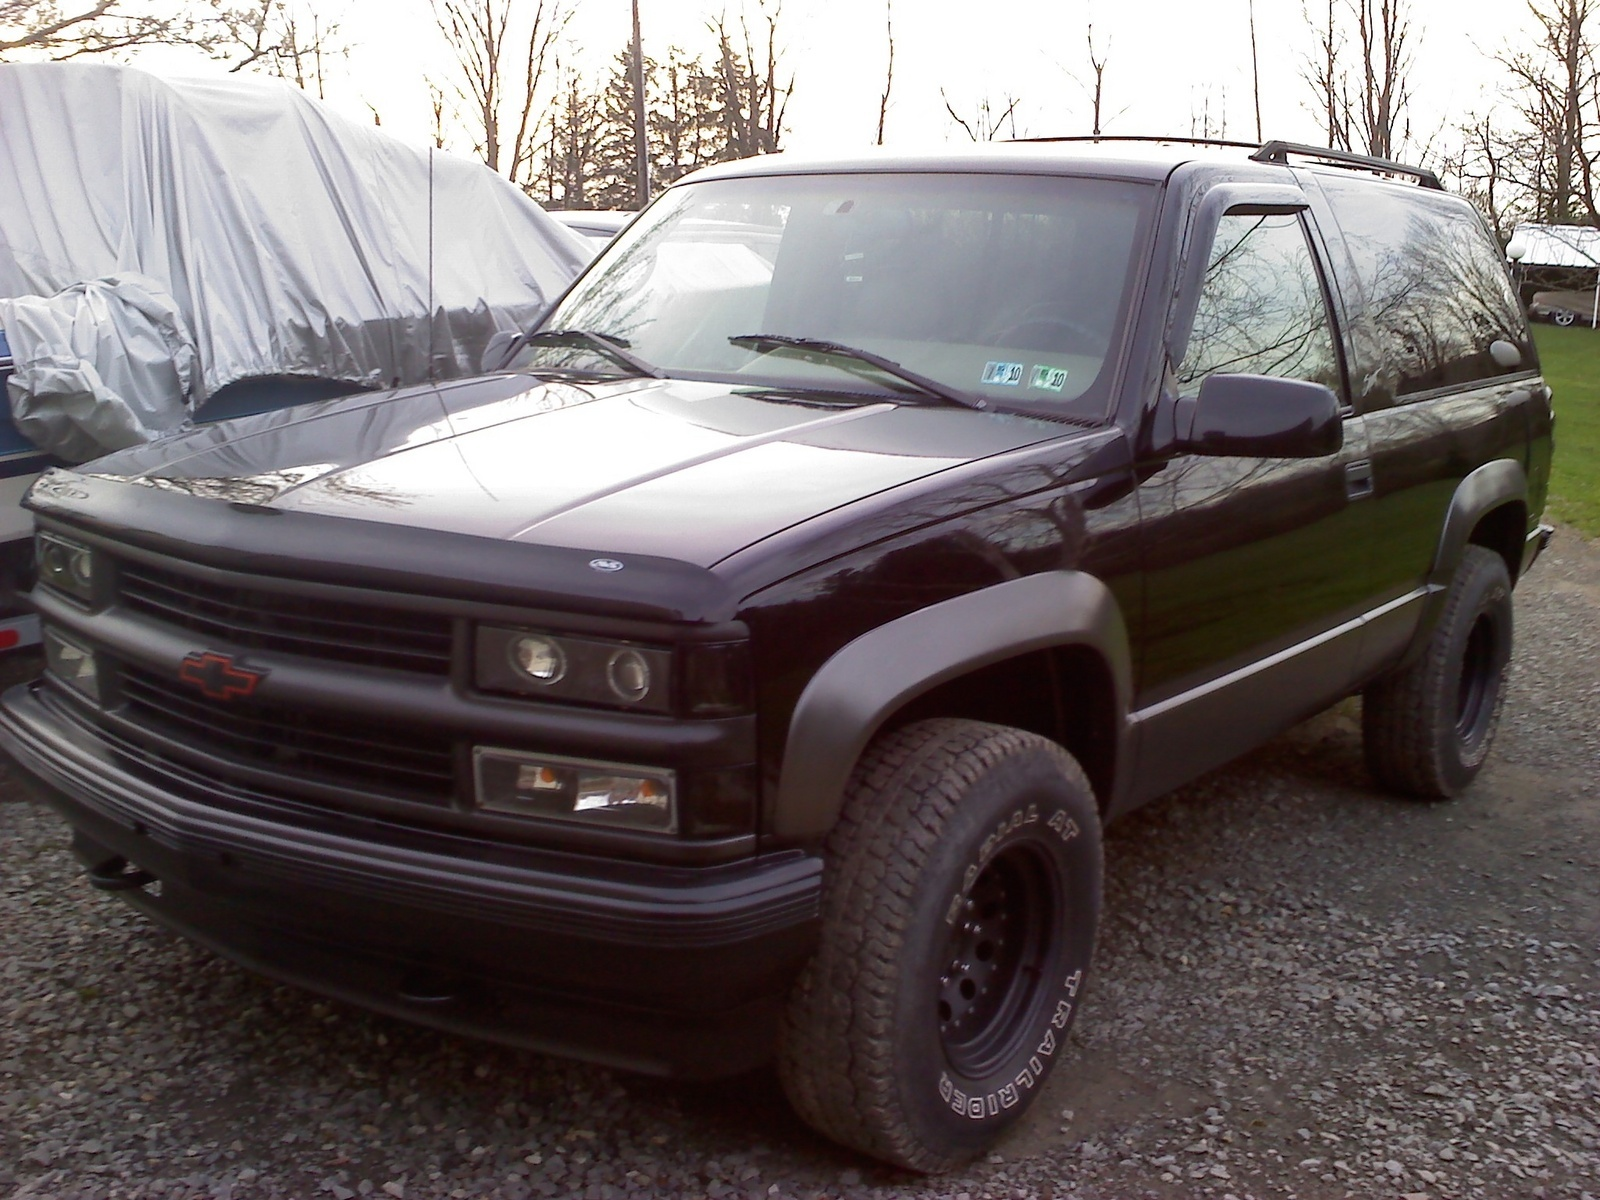 1996 Chevrolet Blazer  User Reviews  CarGurus